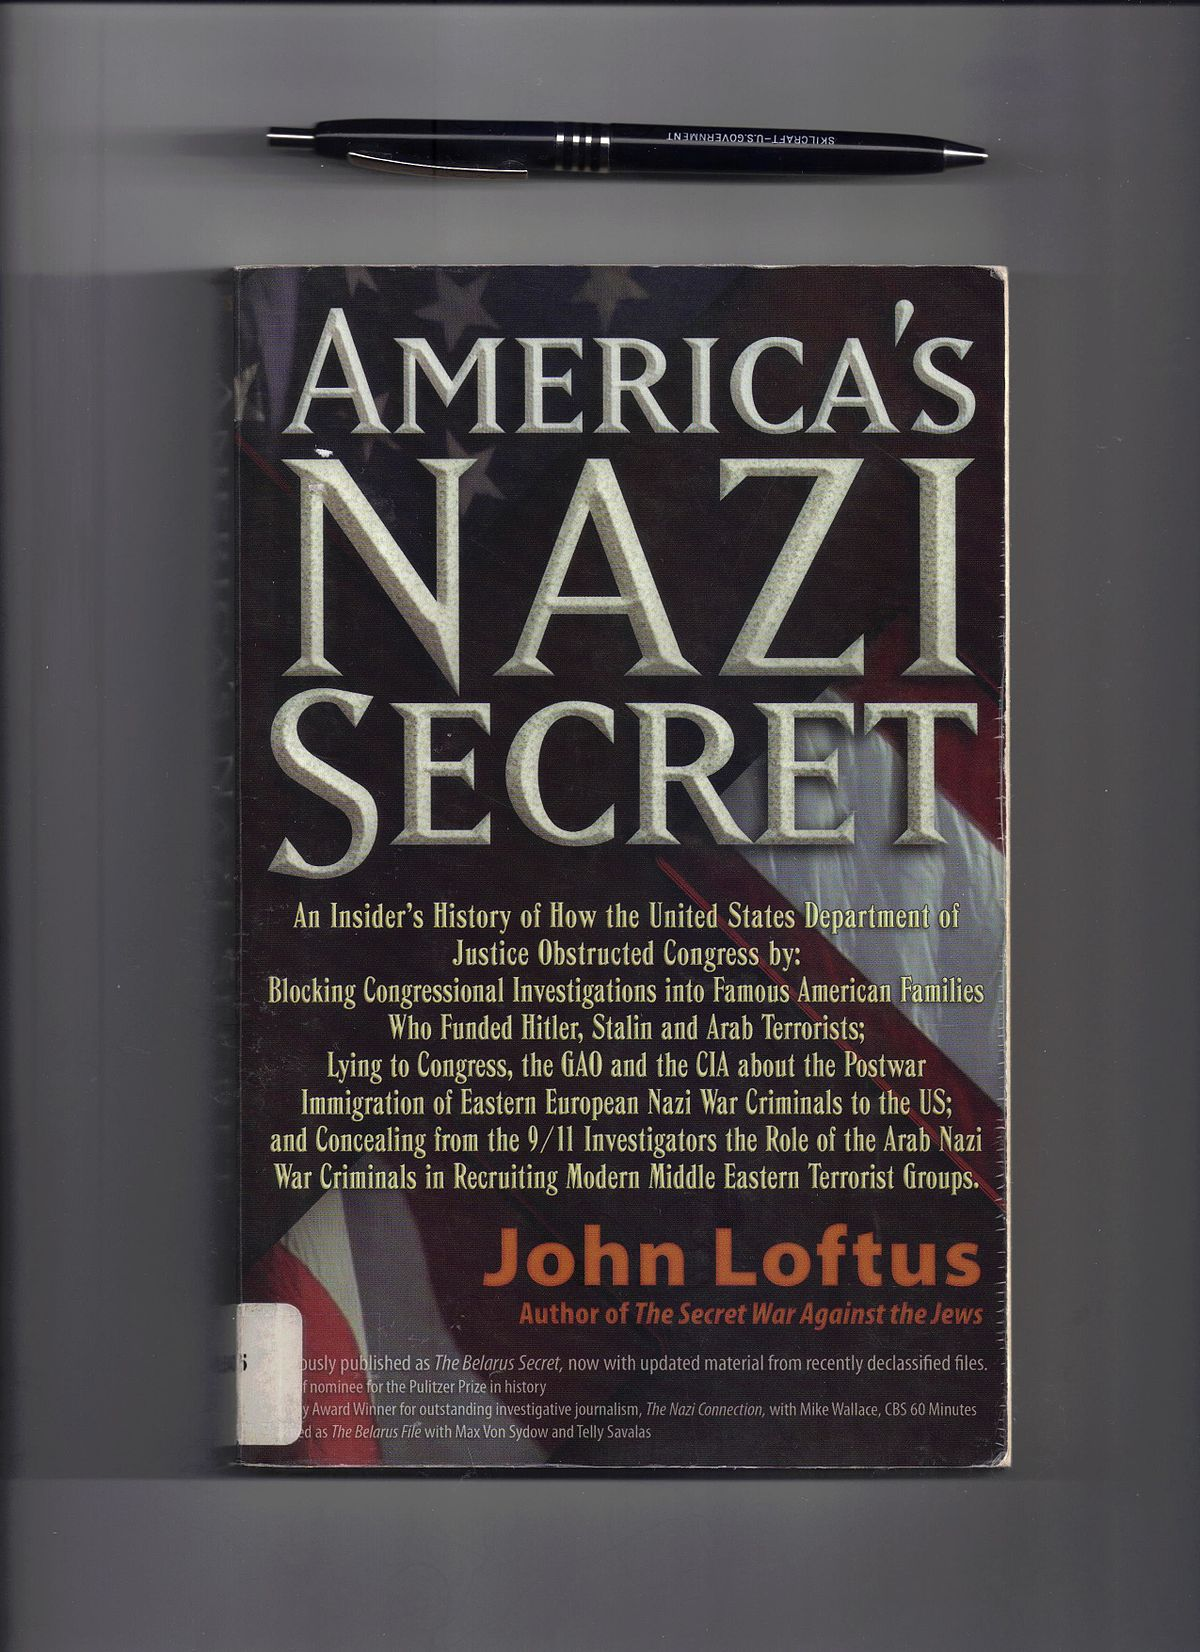 John Loftus (author) - Wikipedia